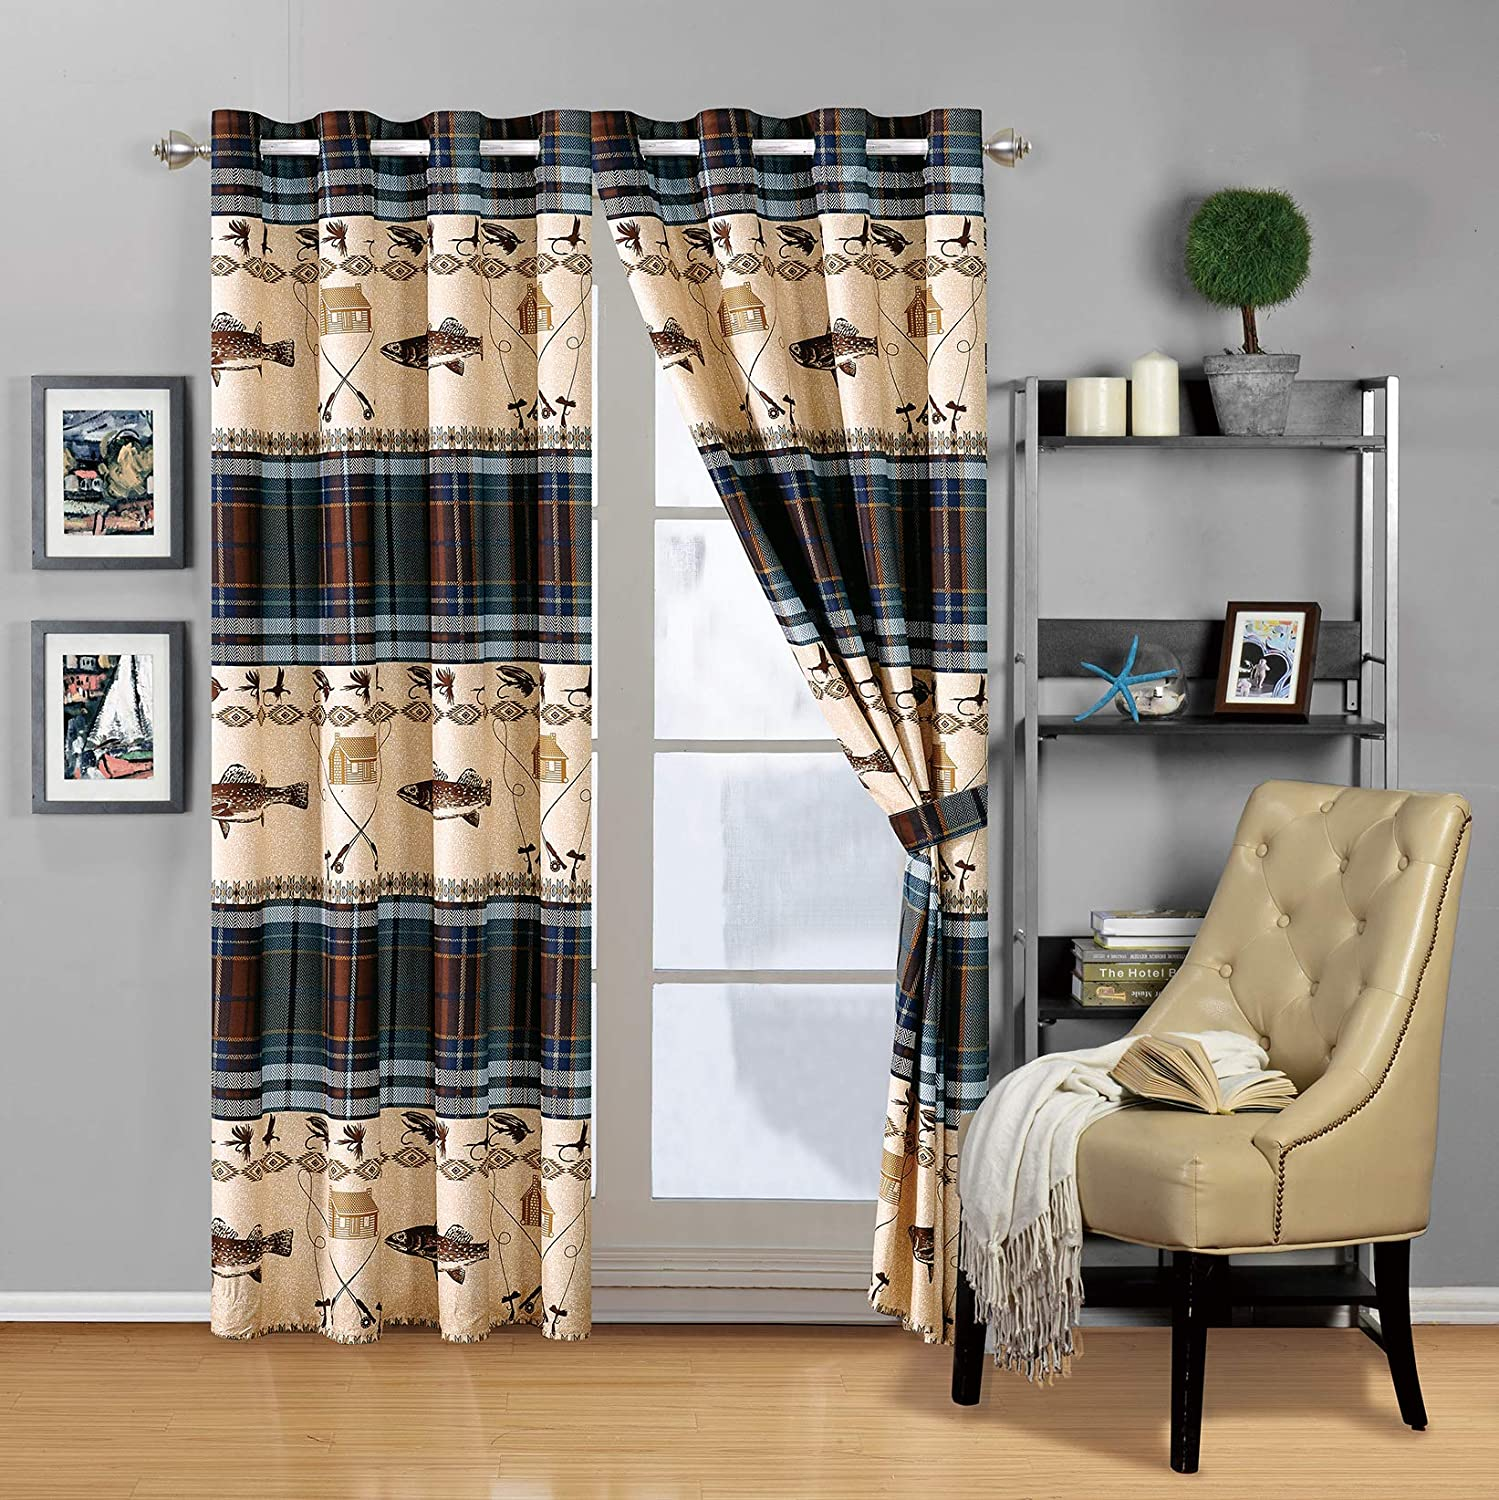 River Fly Fishing Themed Rustic Cabin Lodge Window Treatment Grommet Curtain Set with Fishing Rods Lure with Southwestern Tartan Check Plaid Tweed Patterns Blue Brown – (River Lodge, Curtains)